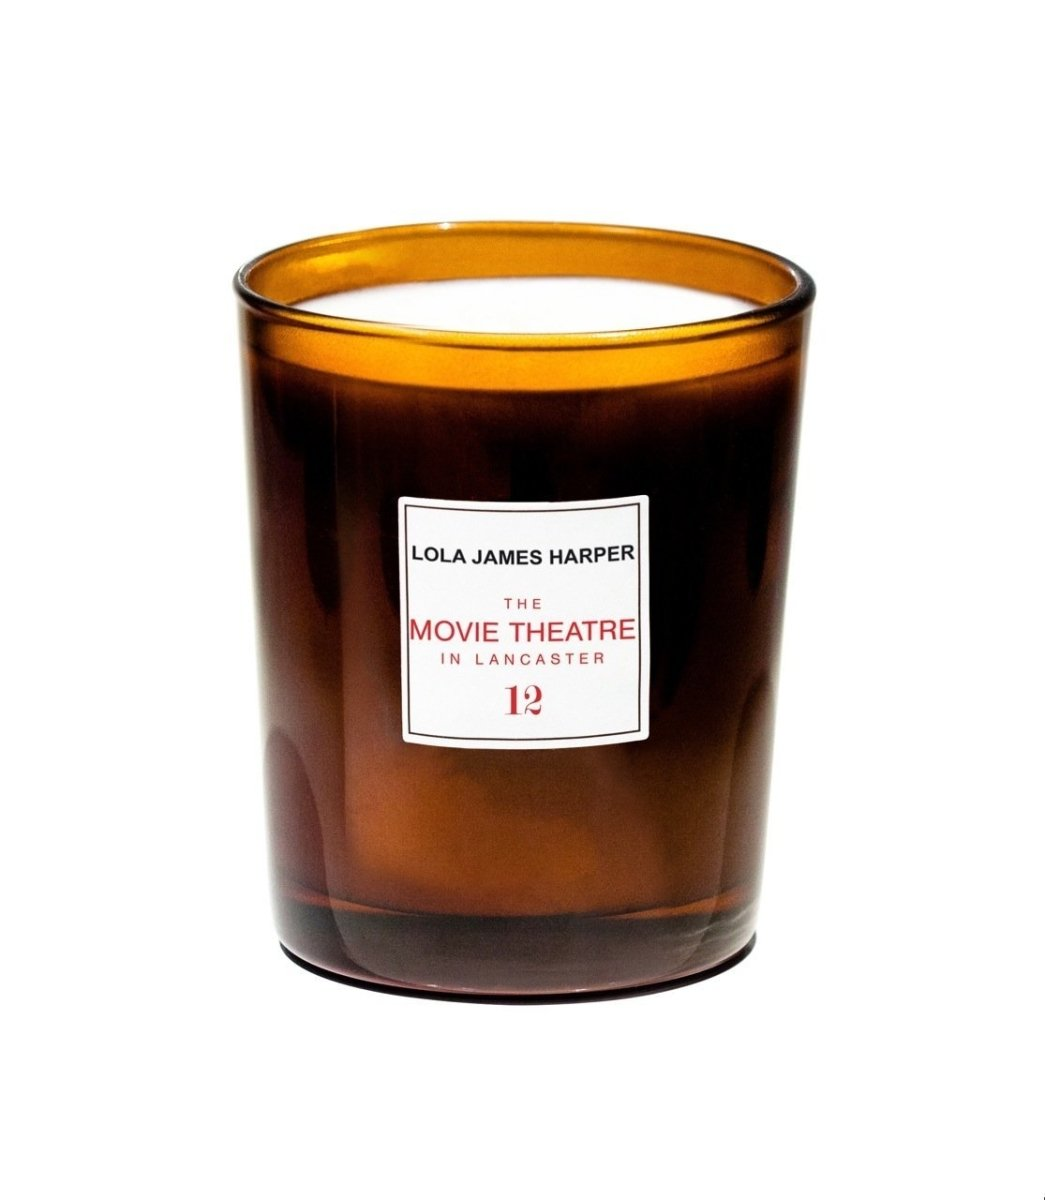 12 The Movie Theatre in Lancaster - 190G CANDLE